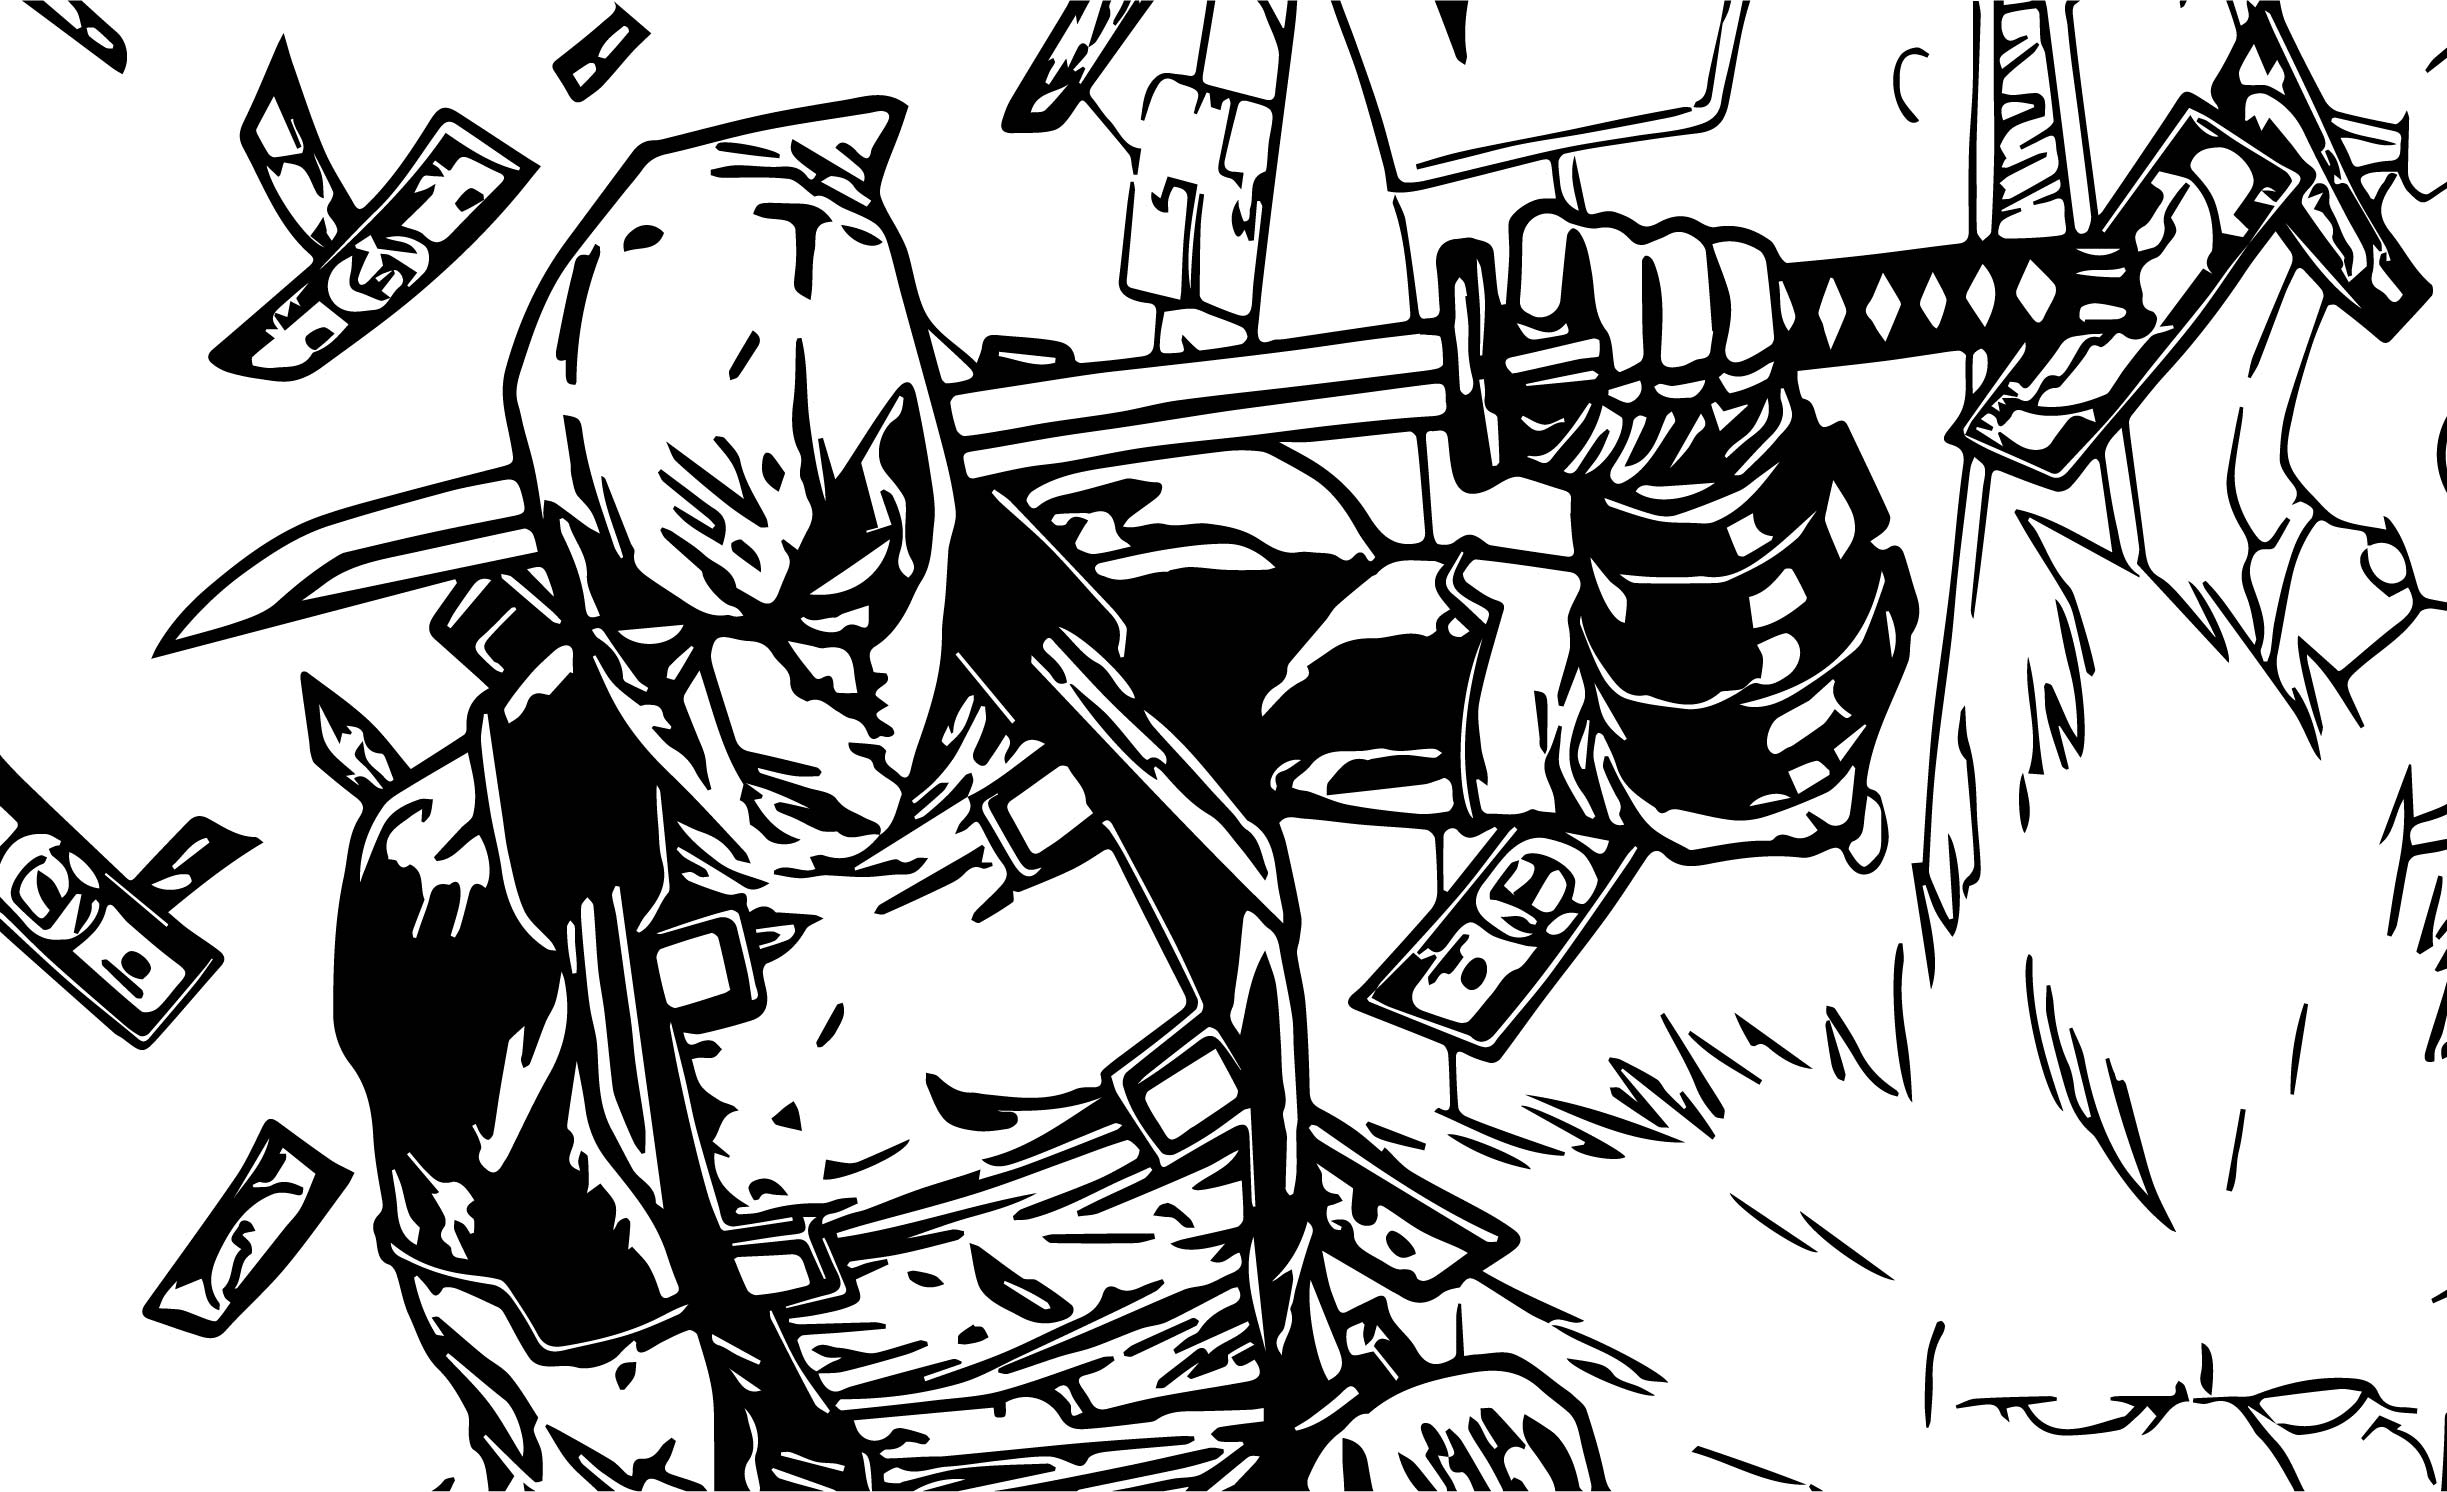 Deadpool Para Colorear Pintar E Imprimir: Comfortable Deadpool 14 Superheroes Paginas Para Colorear